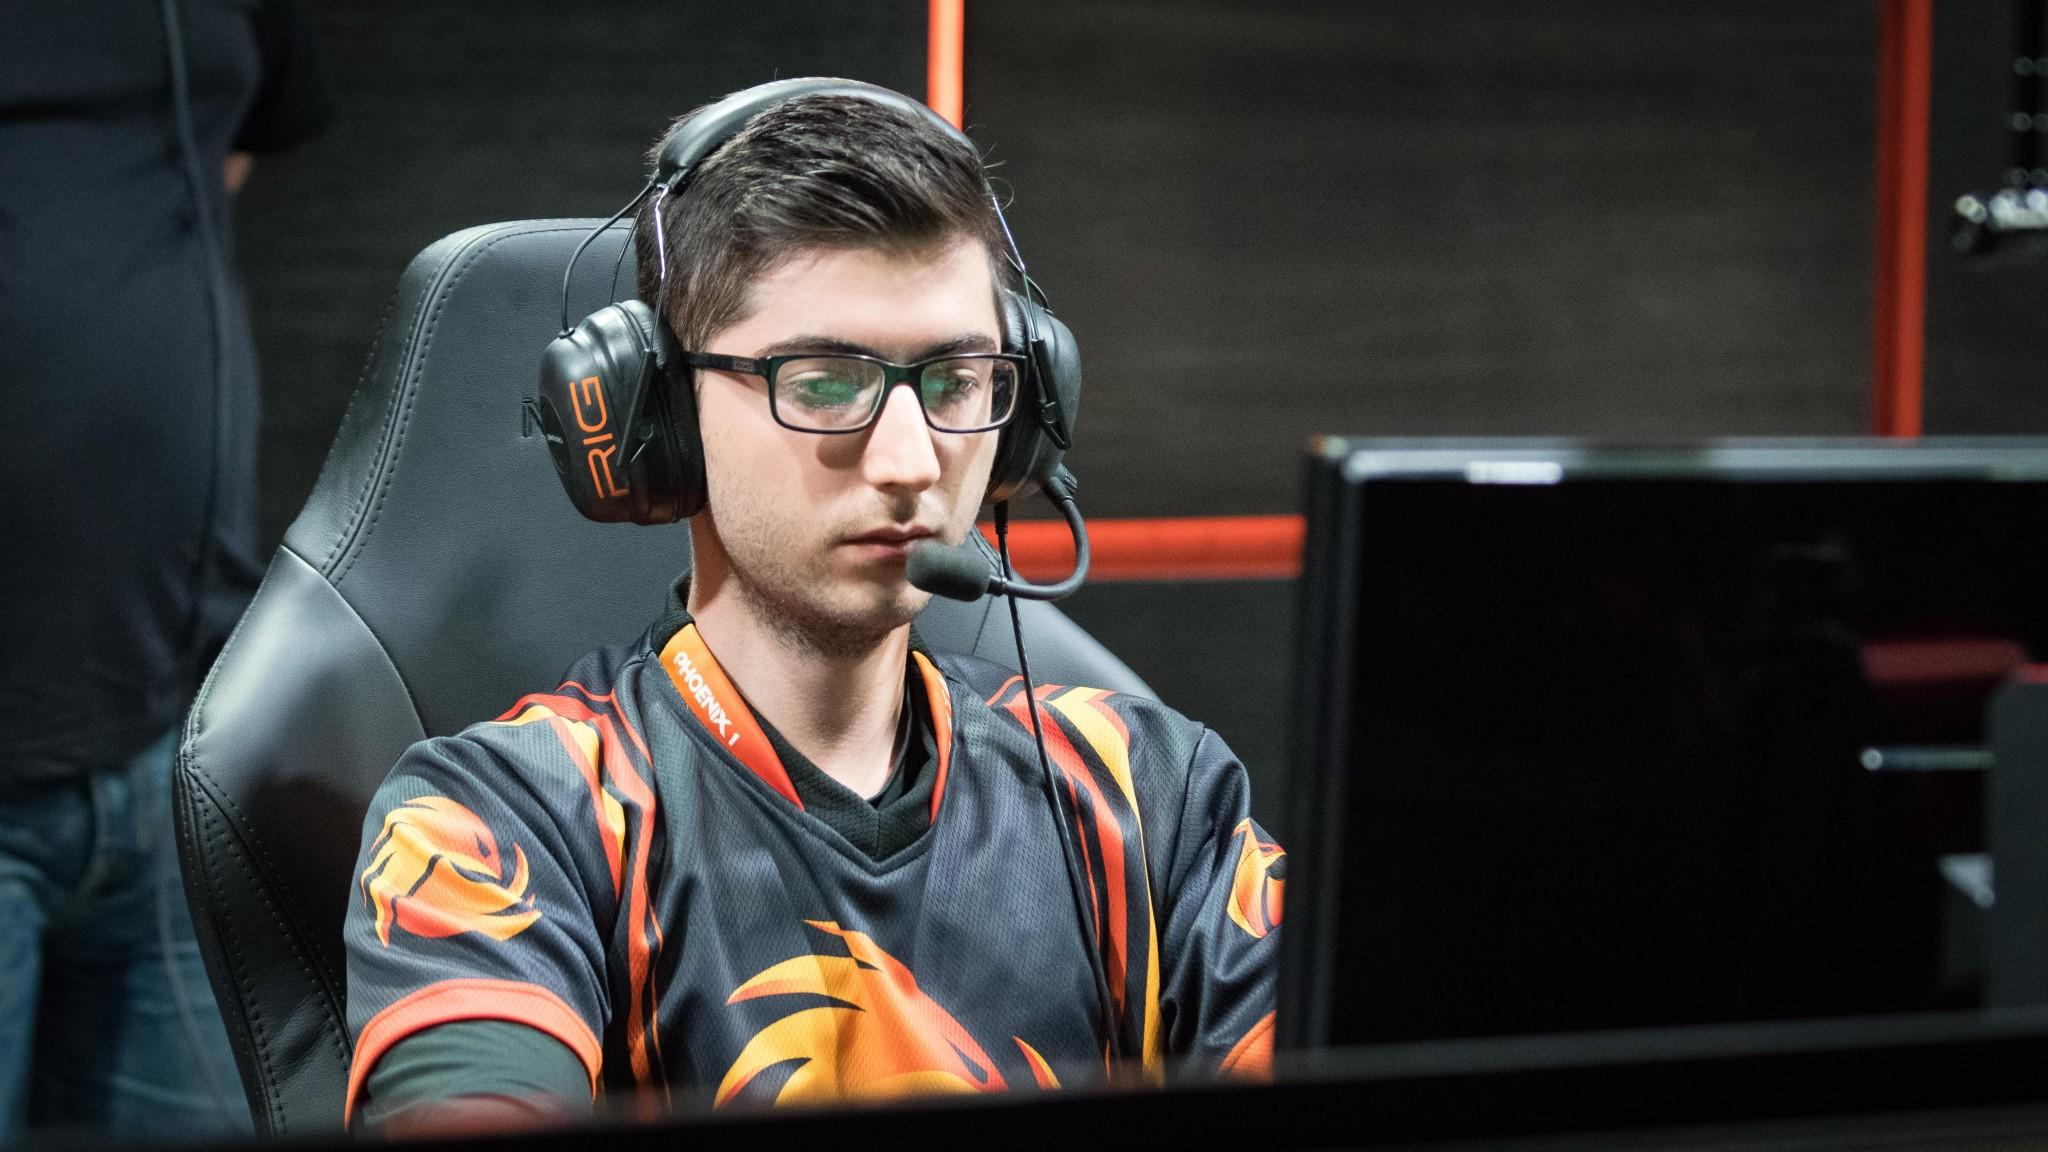 Inori could be a rising star out of the jungle in NA (Jeremy Wacker)